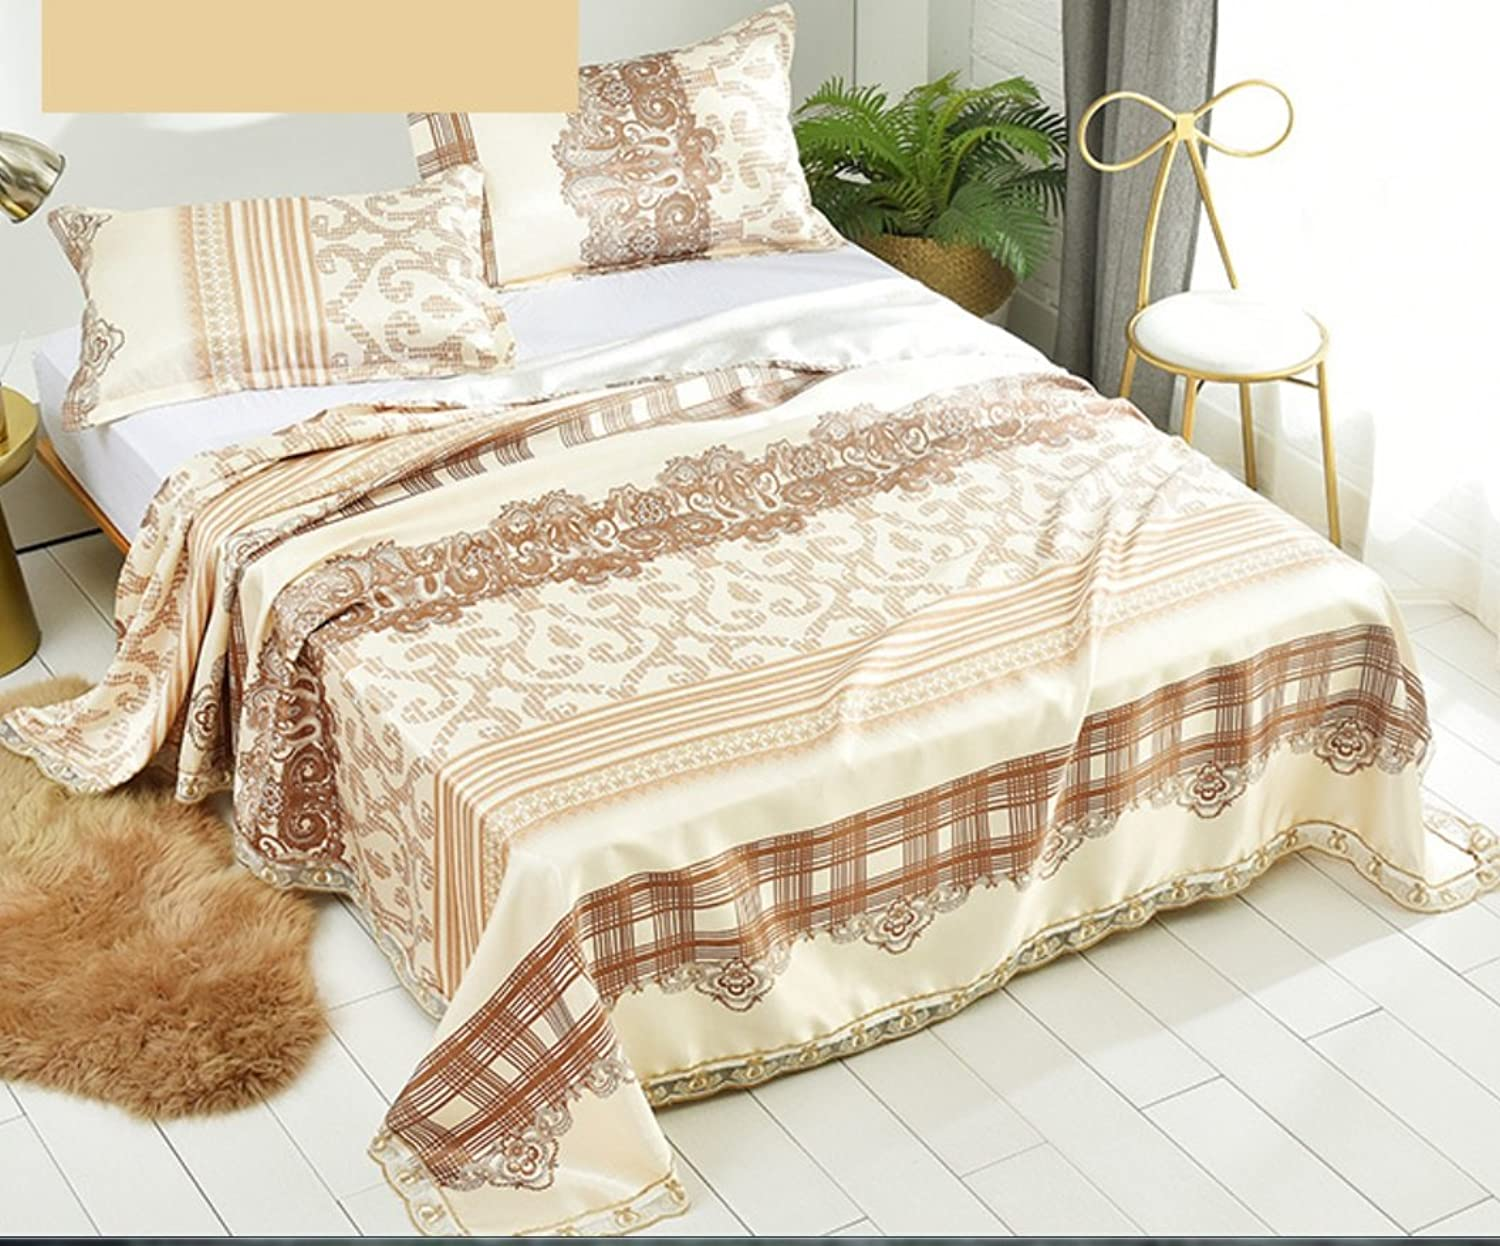 Ice Silk Mat Three Washable Lace Section Summer Mat Soft Quilt Cover ZXCV (color   Beige, Size   240  250cm)